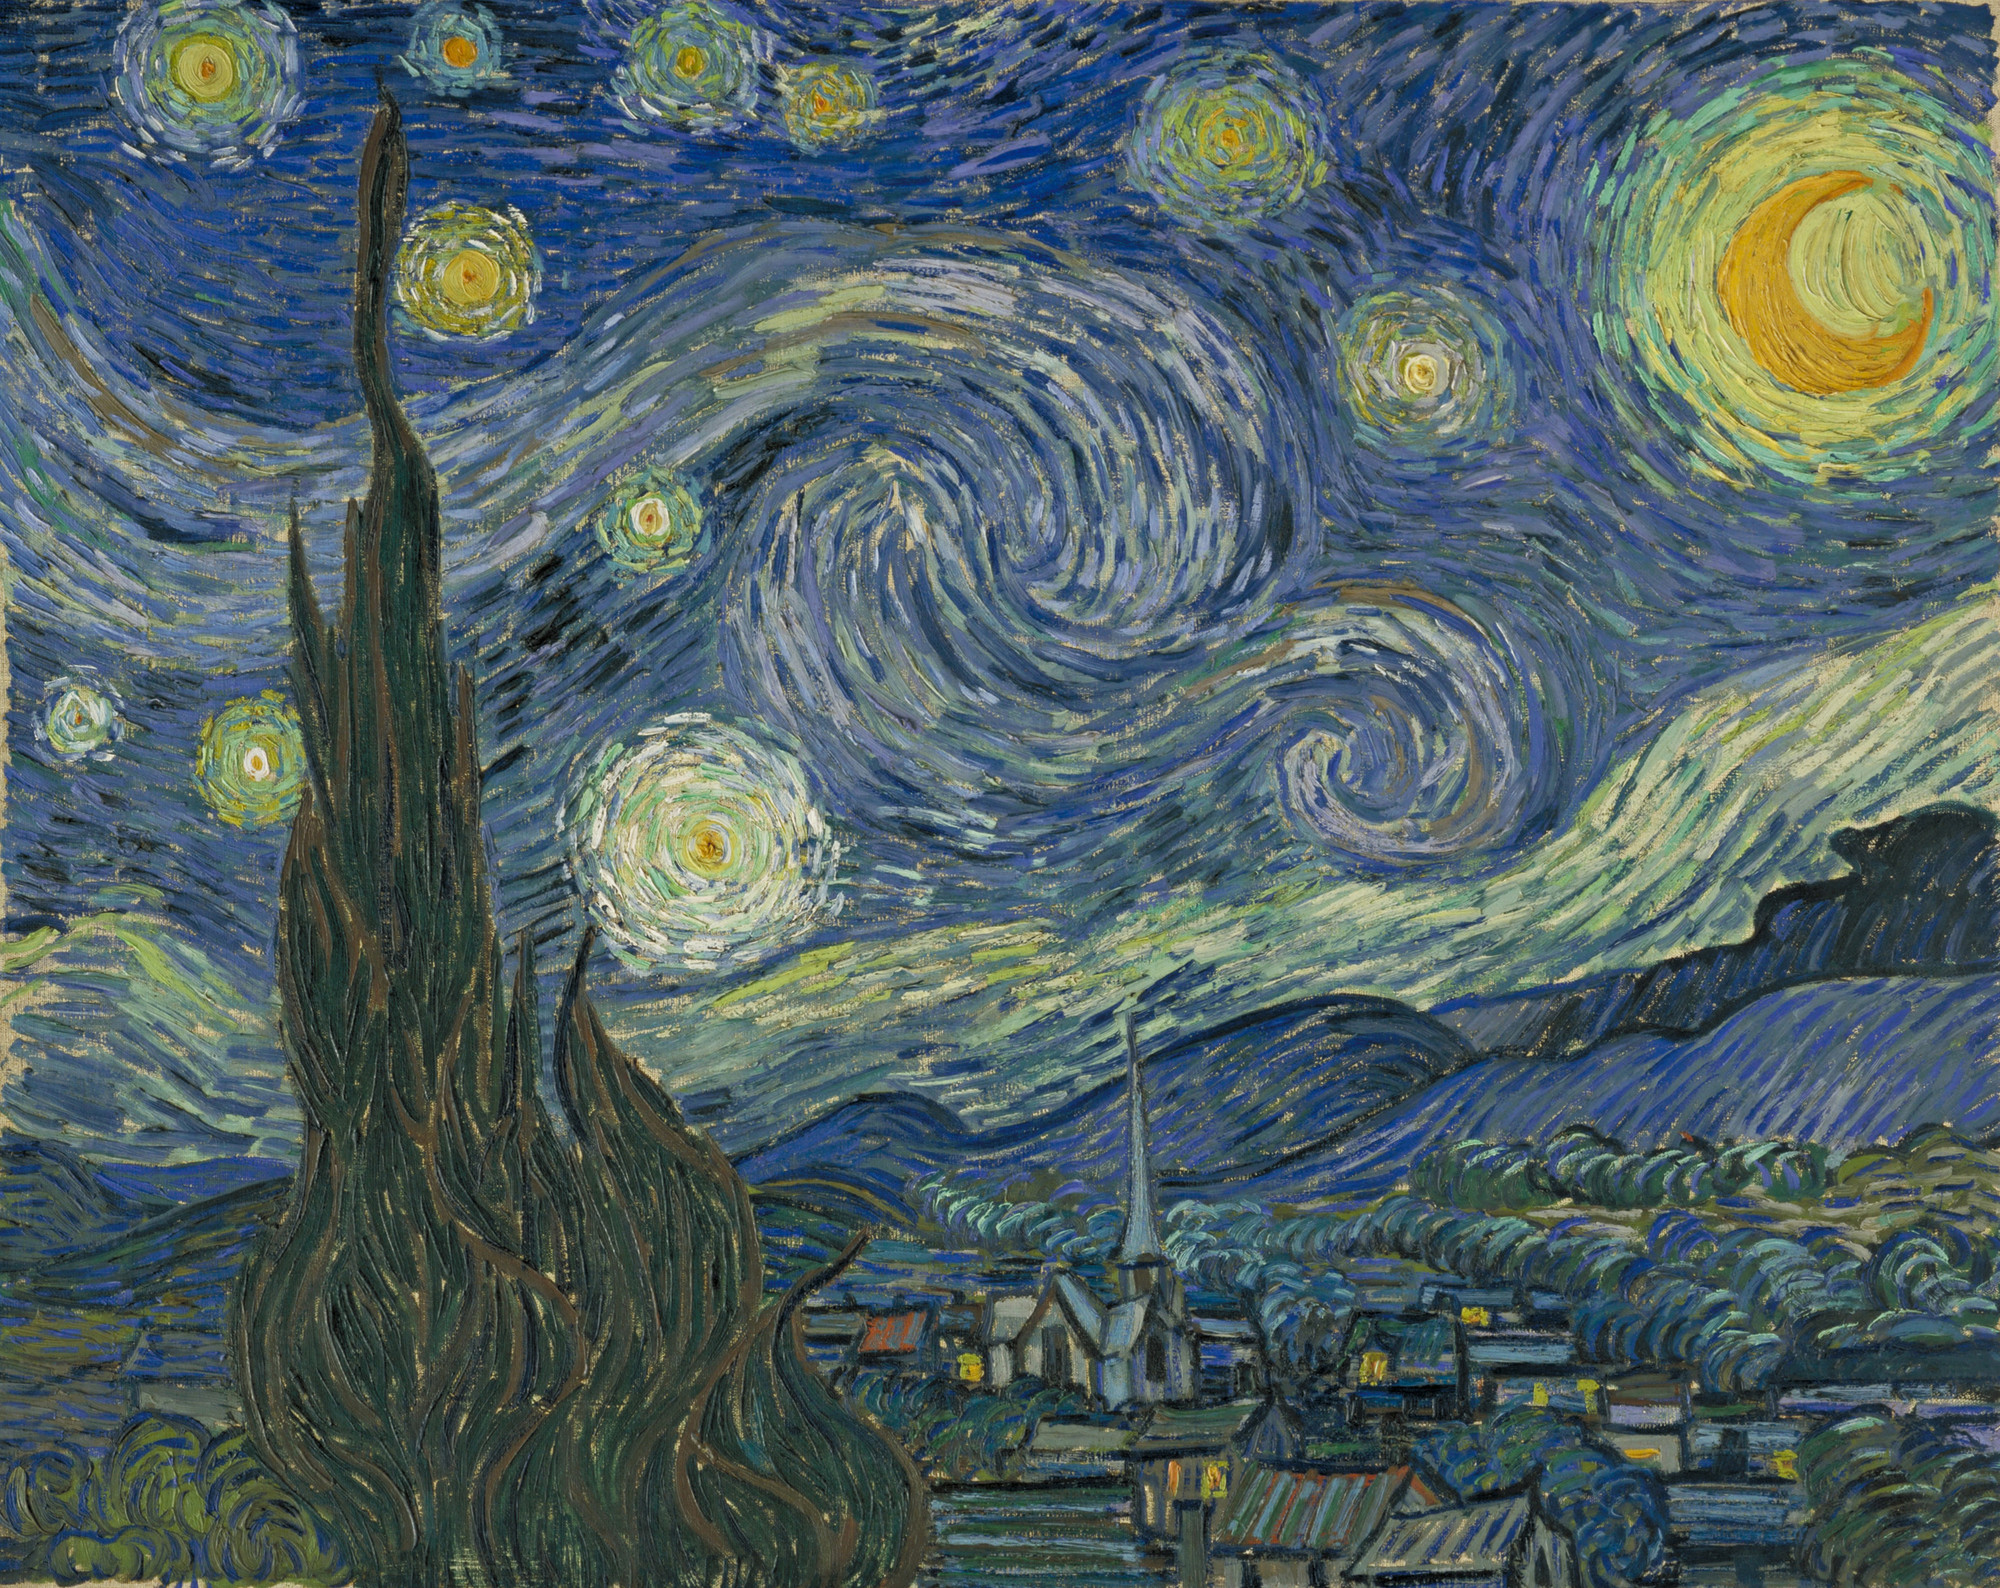 Vincent van Gogh. The Starry Night. Saint Rémy, June 1889. Oil on canvas, 29 × 36 1/4ʺ (73.7 × 92.1 cm). Acquired through the Lillie P. Bliss Bequest. Photo © 1999 The Museum of Modern Art, N.Y.